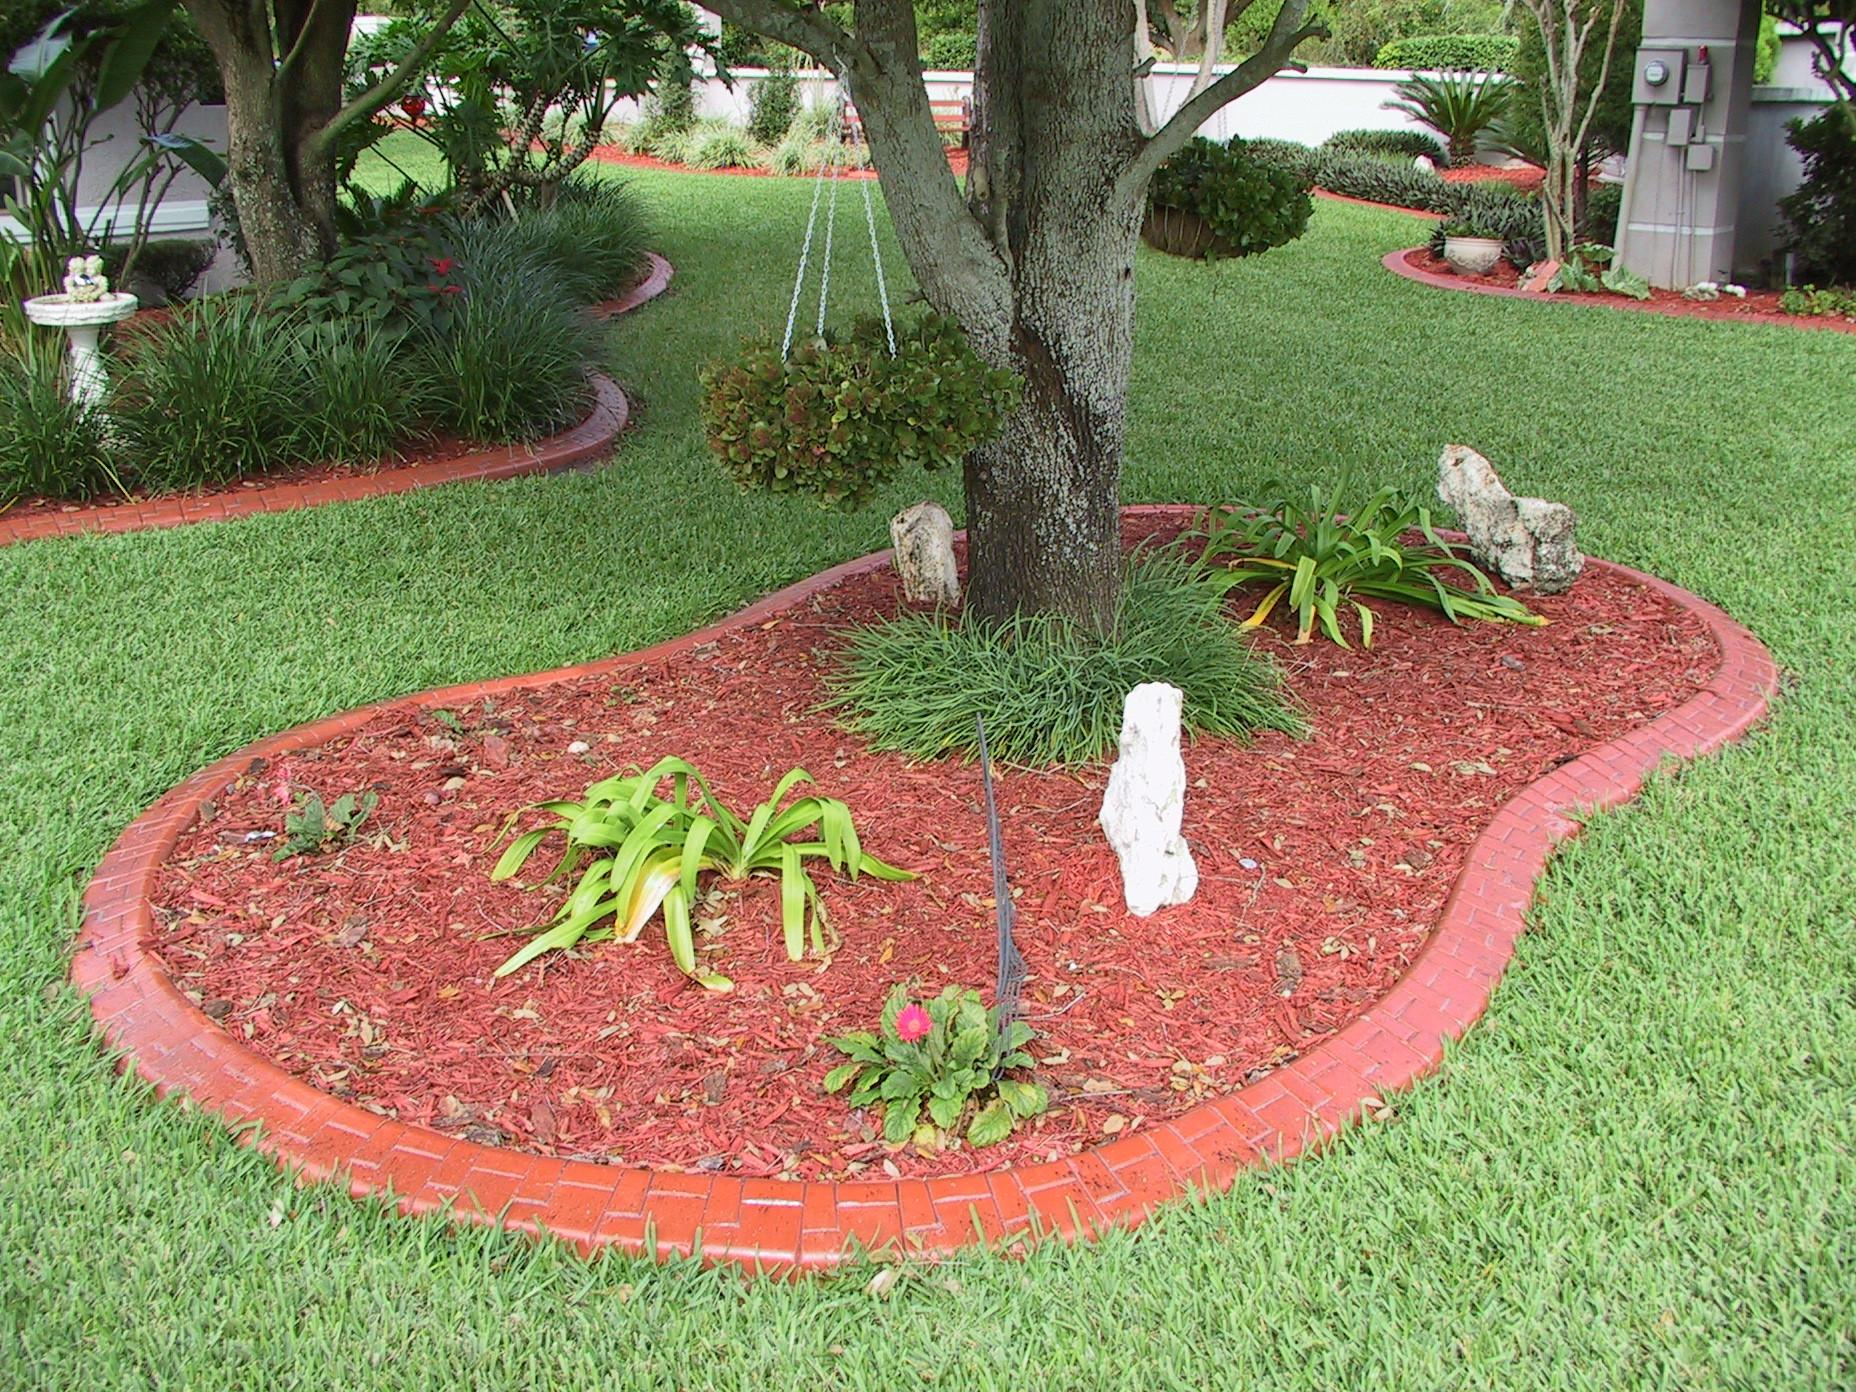 Decor Edging Bricks Flower Bed Borders Landscape